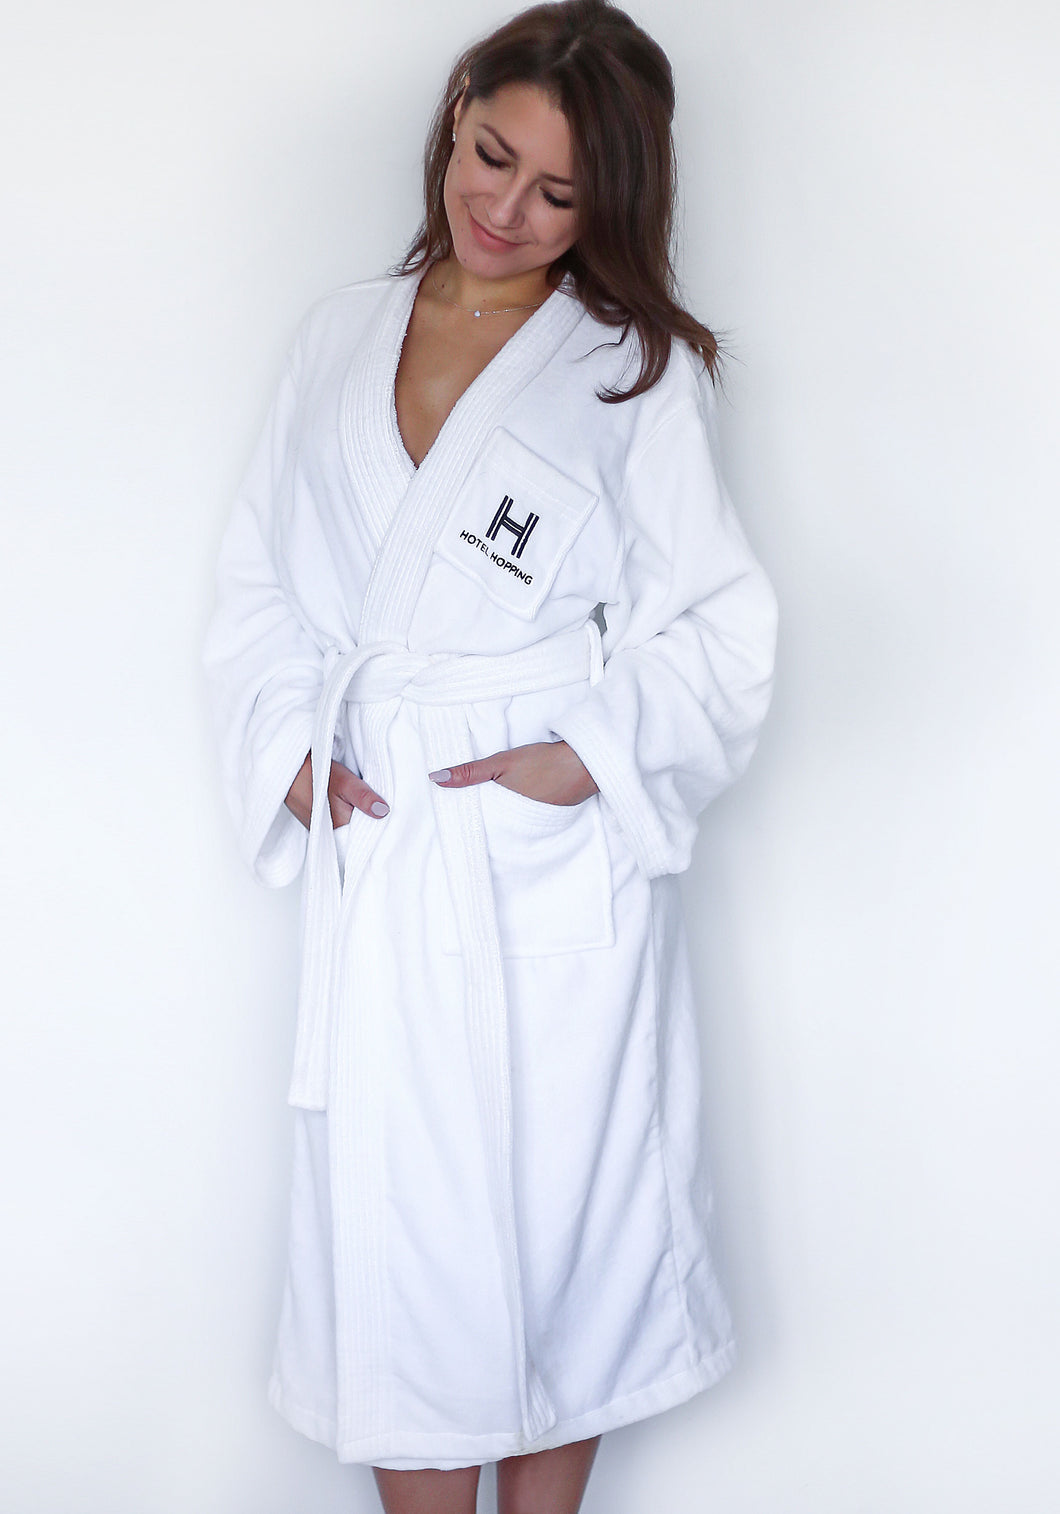 Small Hotel Hopping Bath Robe